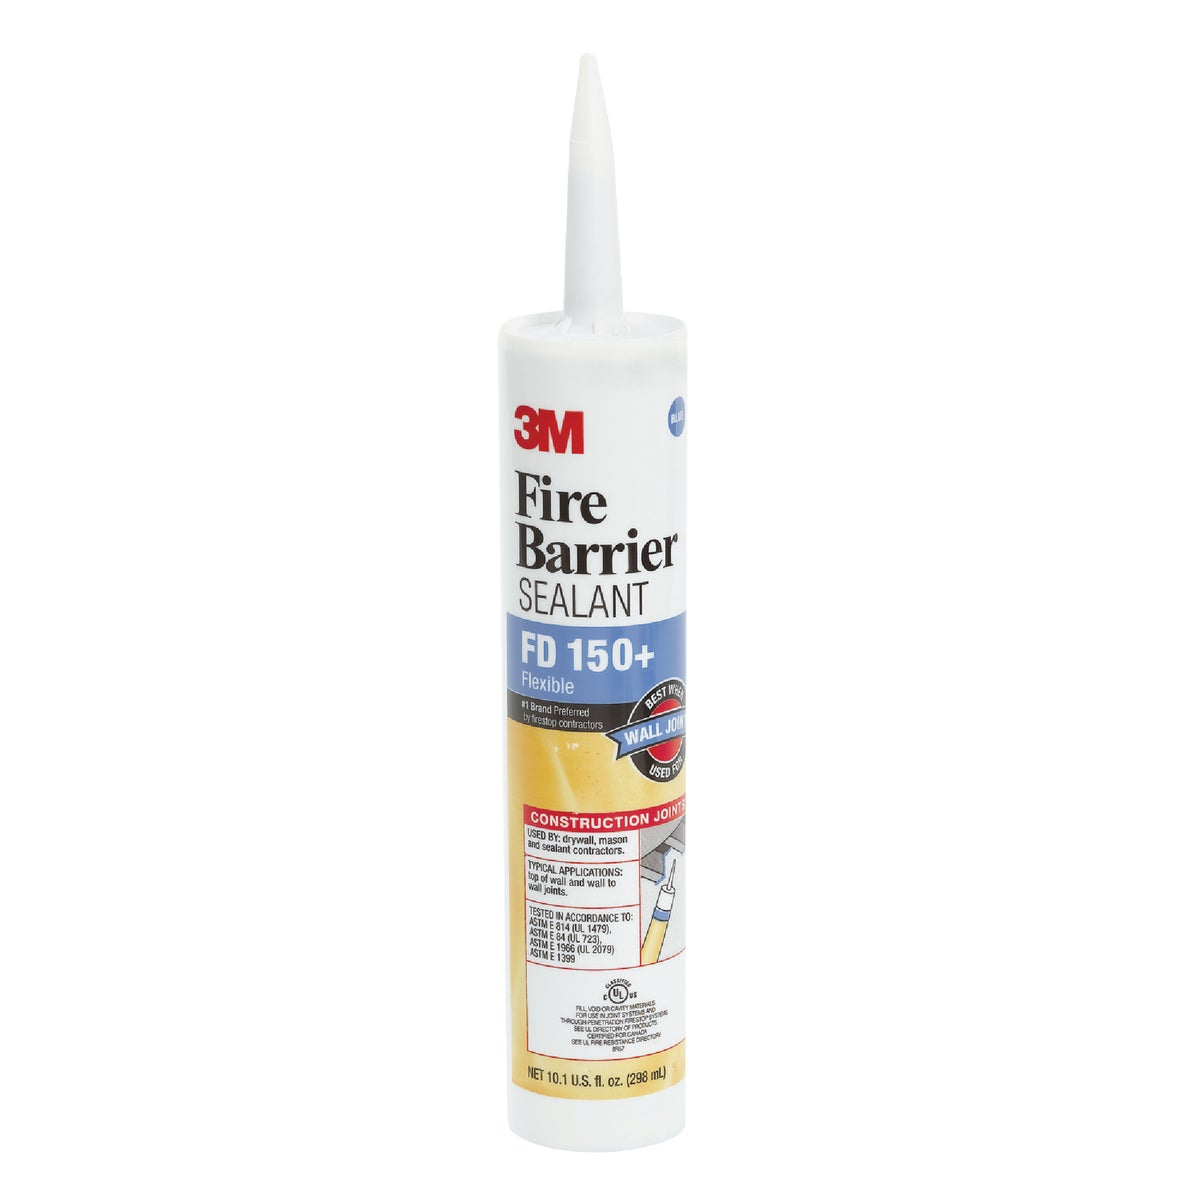 LIM FIRE BARRIER SEALANT - FD 150+ by 3m Co